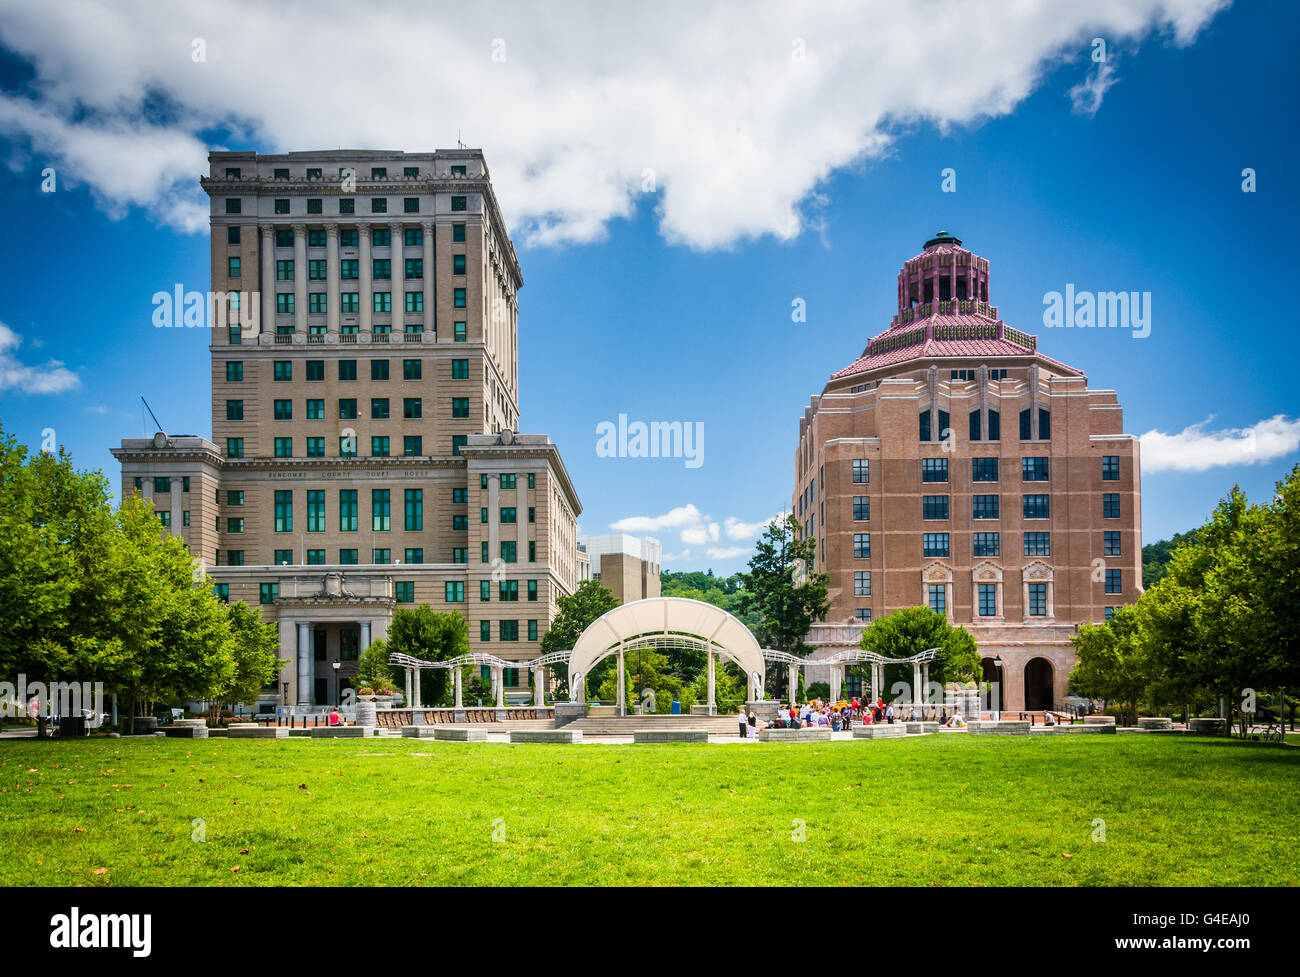 Buncombe County Courthouse and Asheville City Hall, in Asheville, North Carolina. - Stock Image